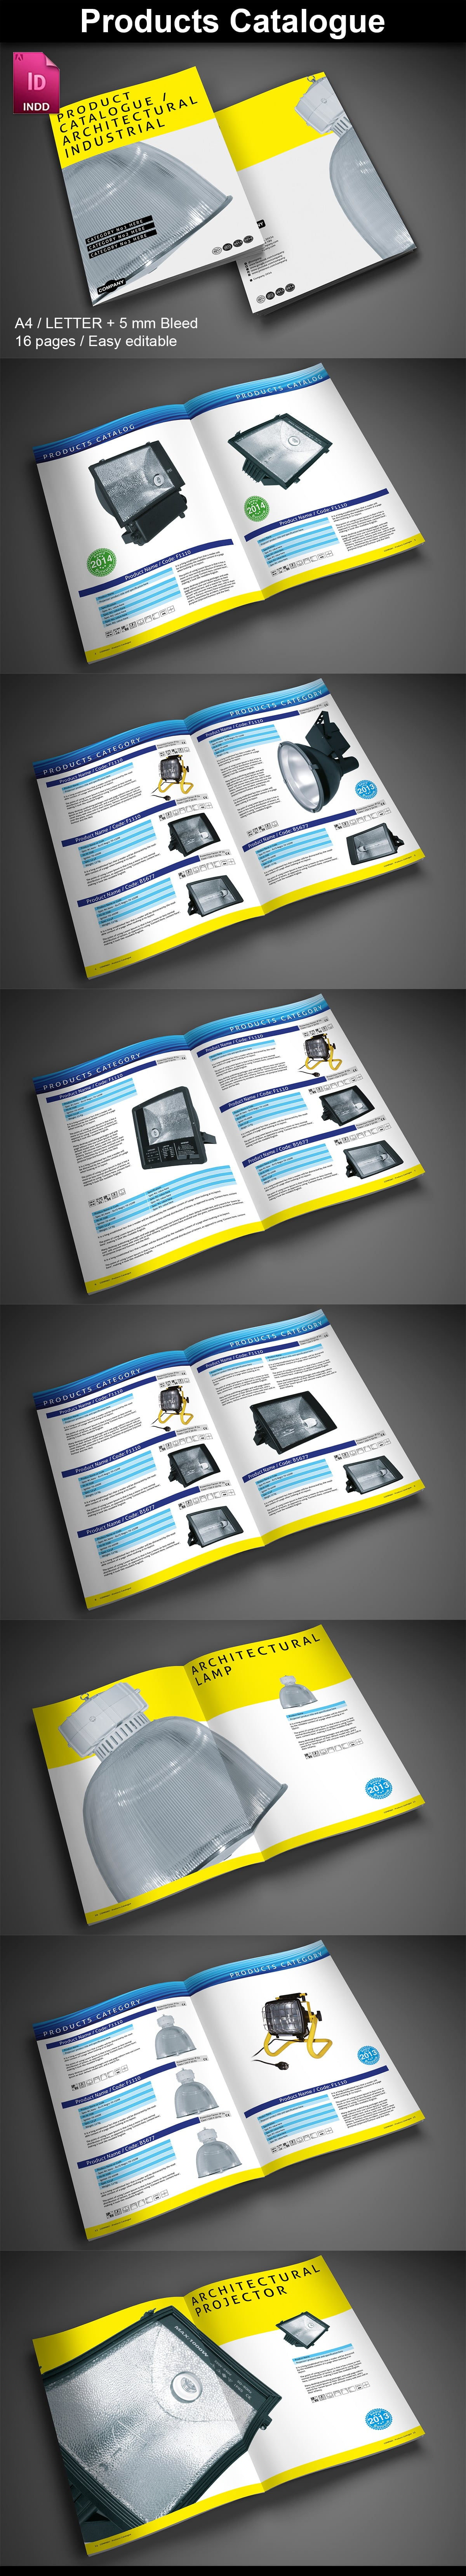 15  InDesign Product Catalogs - just $19 - 04 Products4 ImagePreview